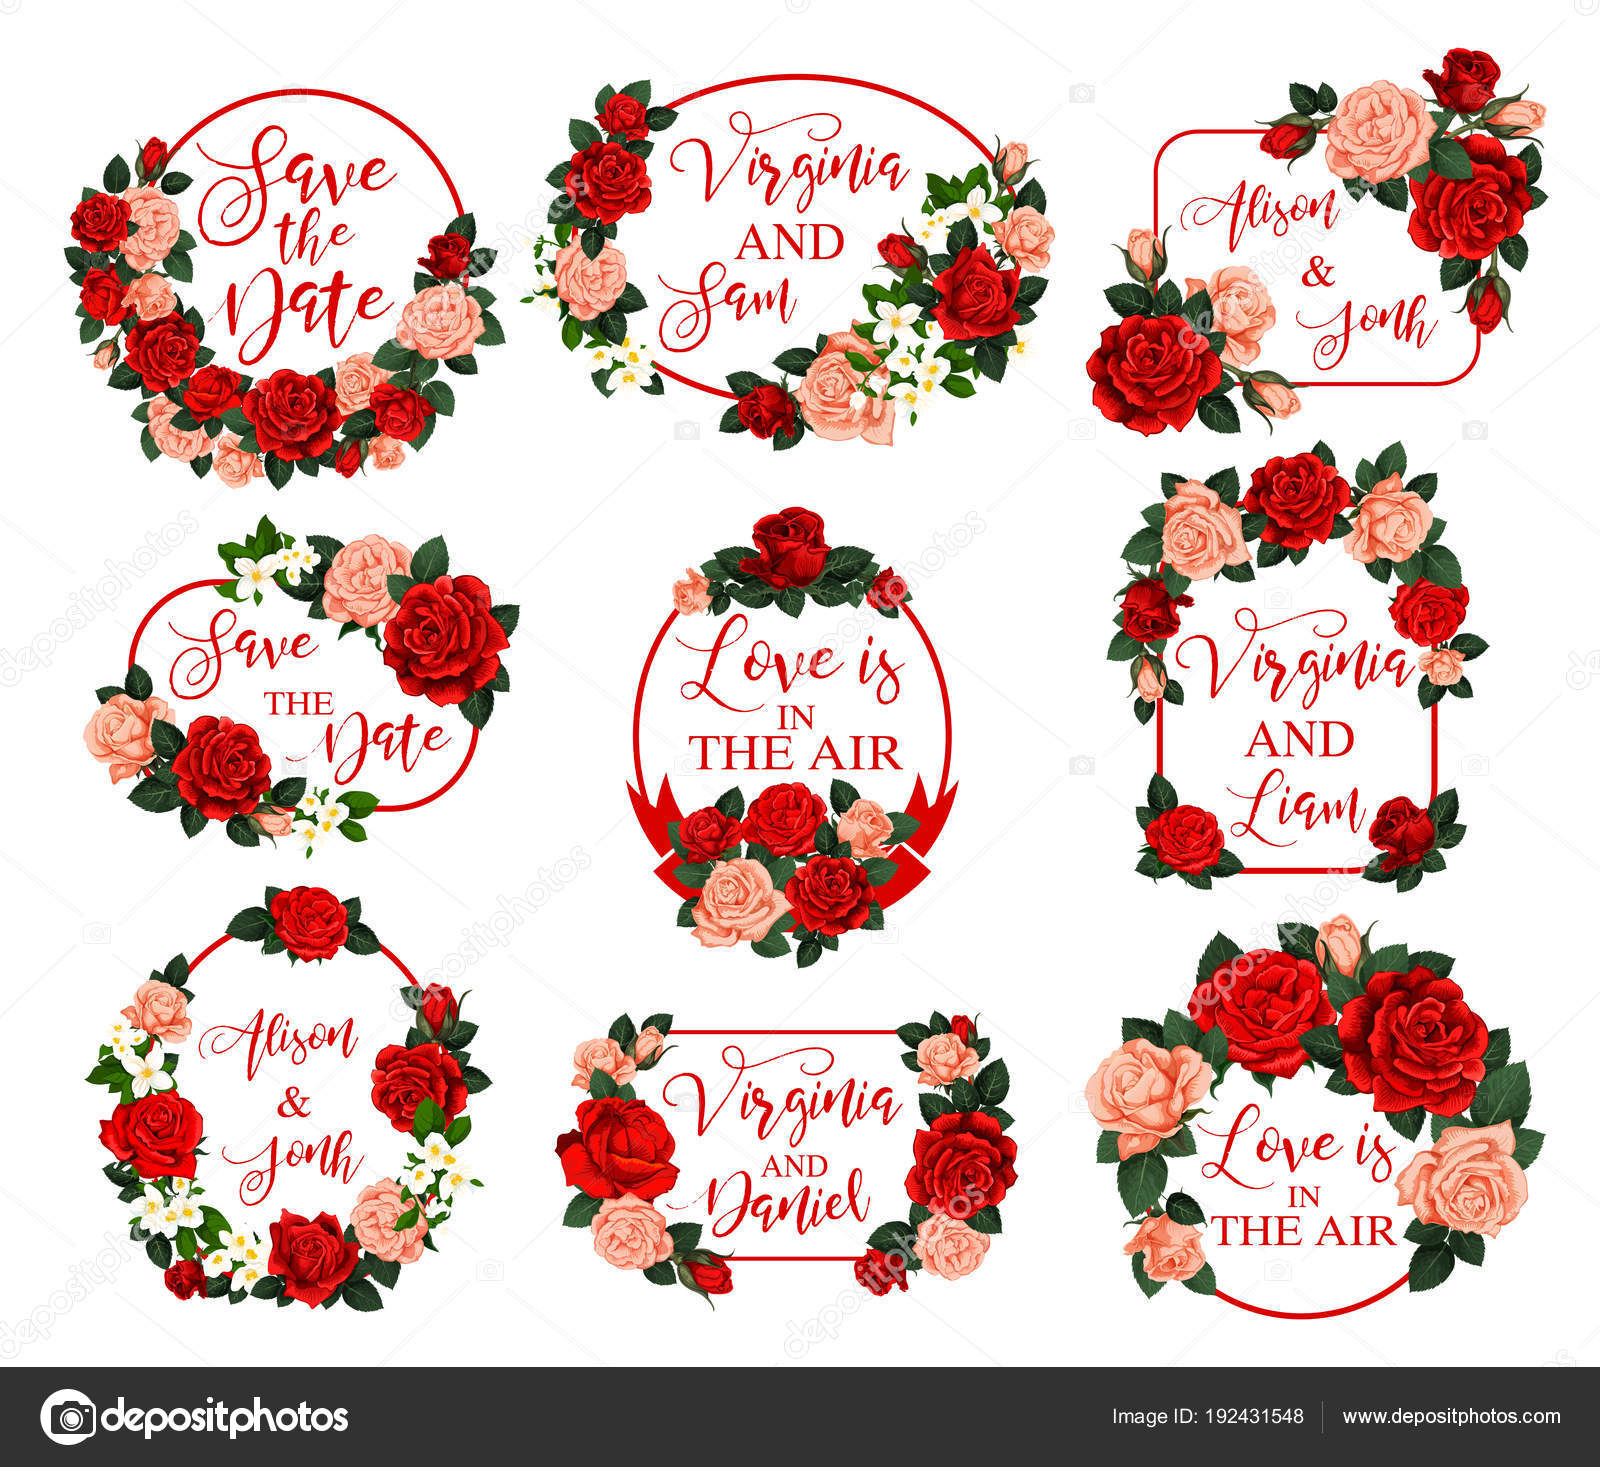 Save the Date vector flower for wedding invitation — Stock Vector ...